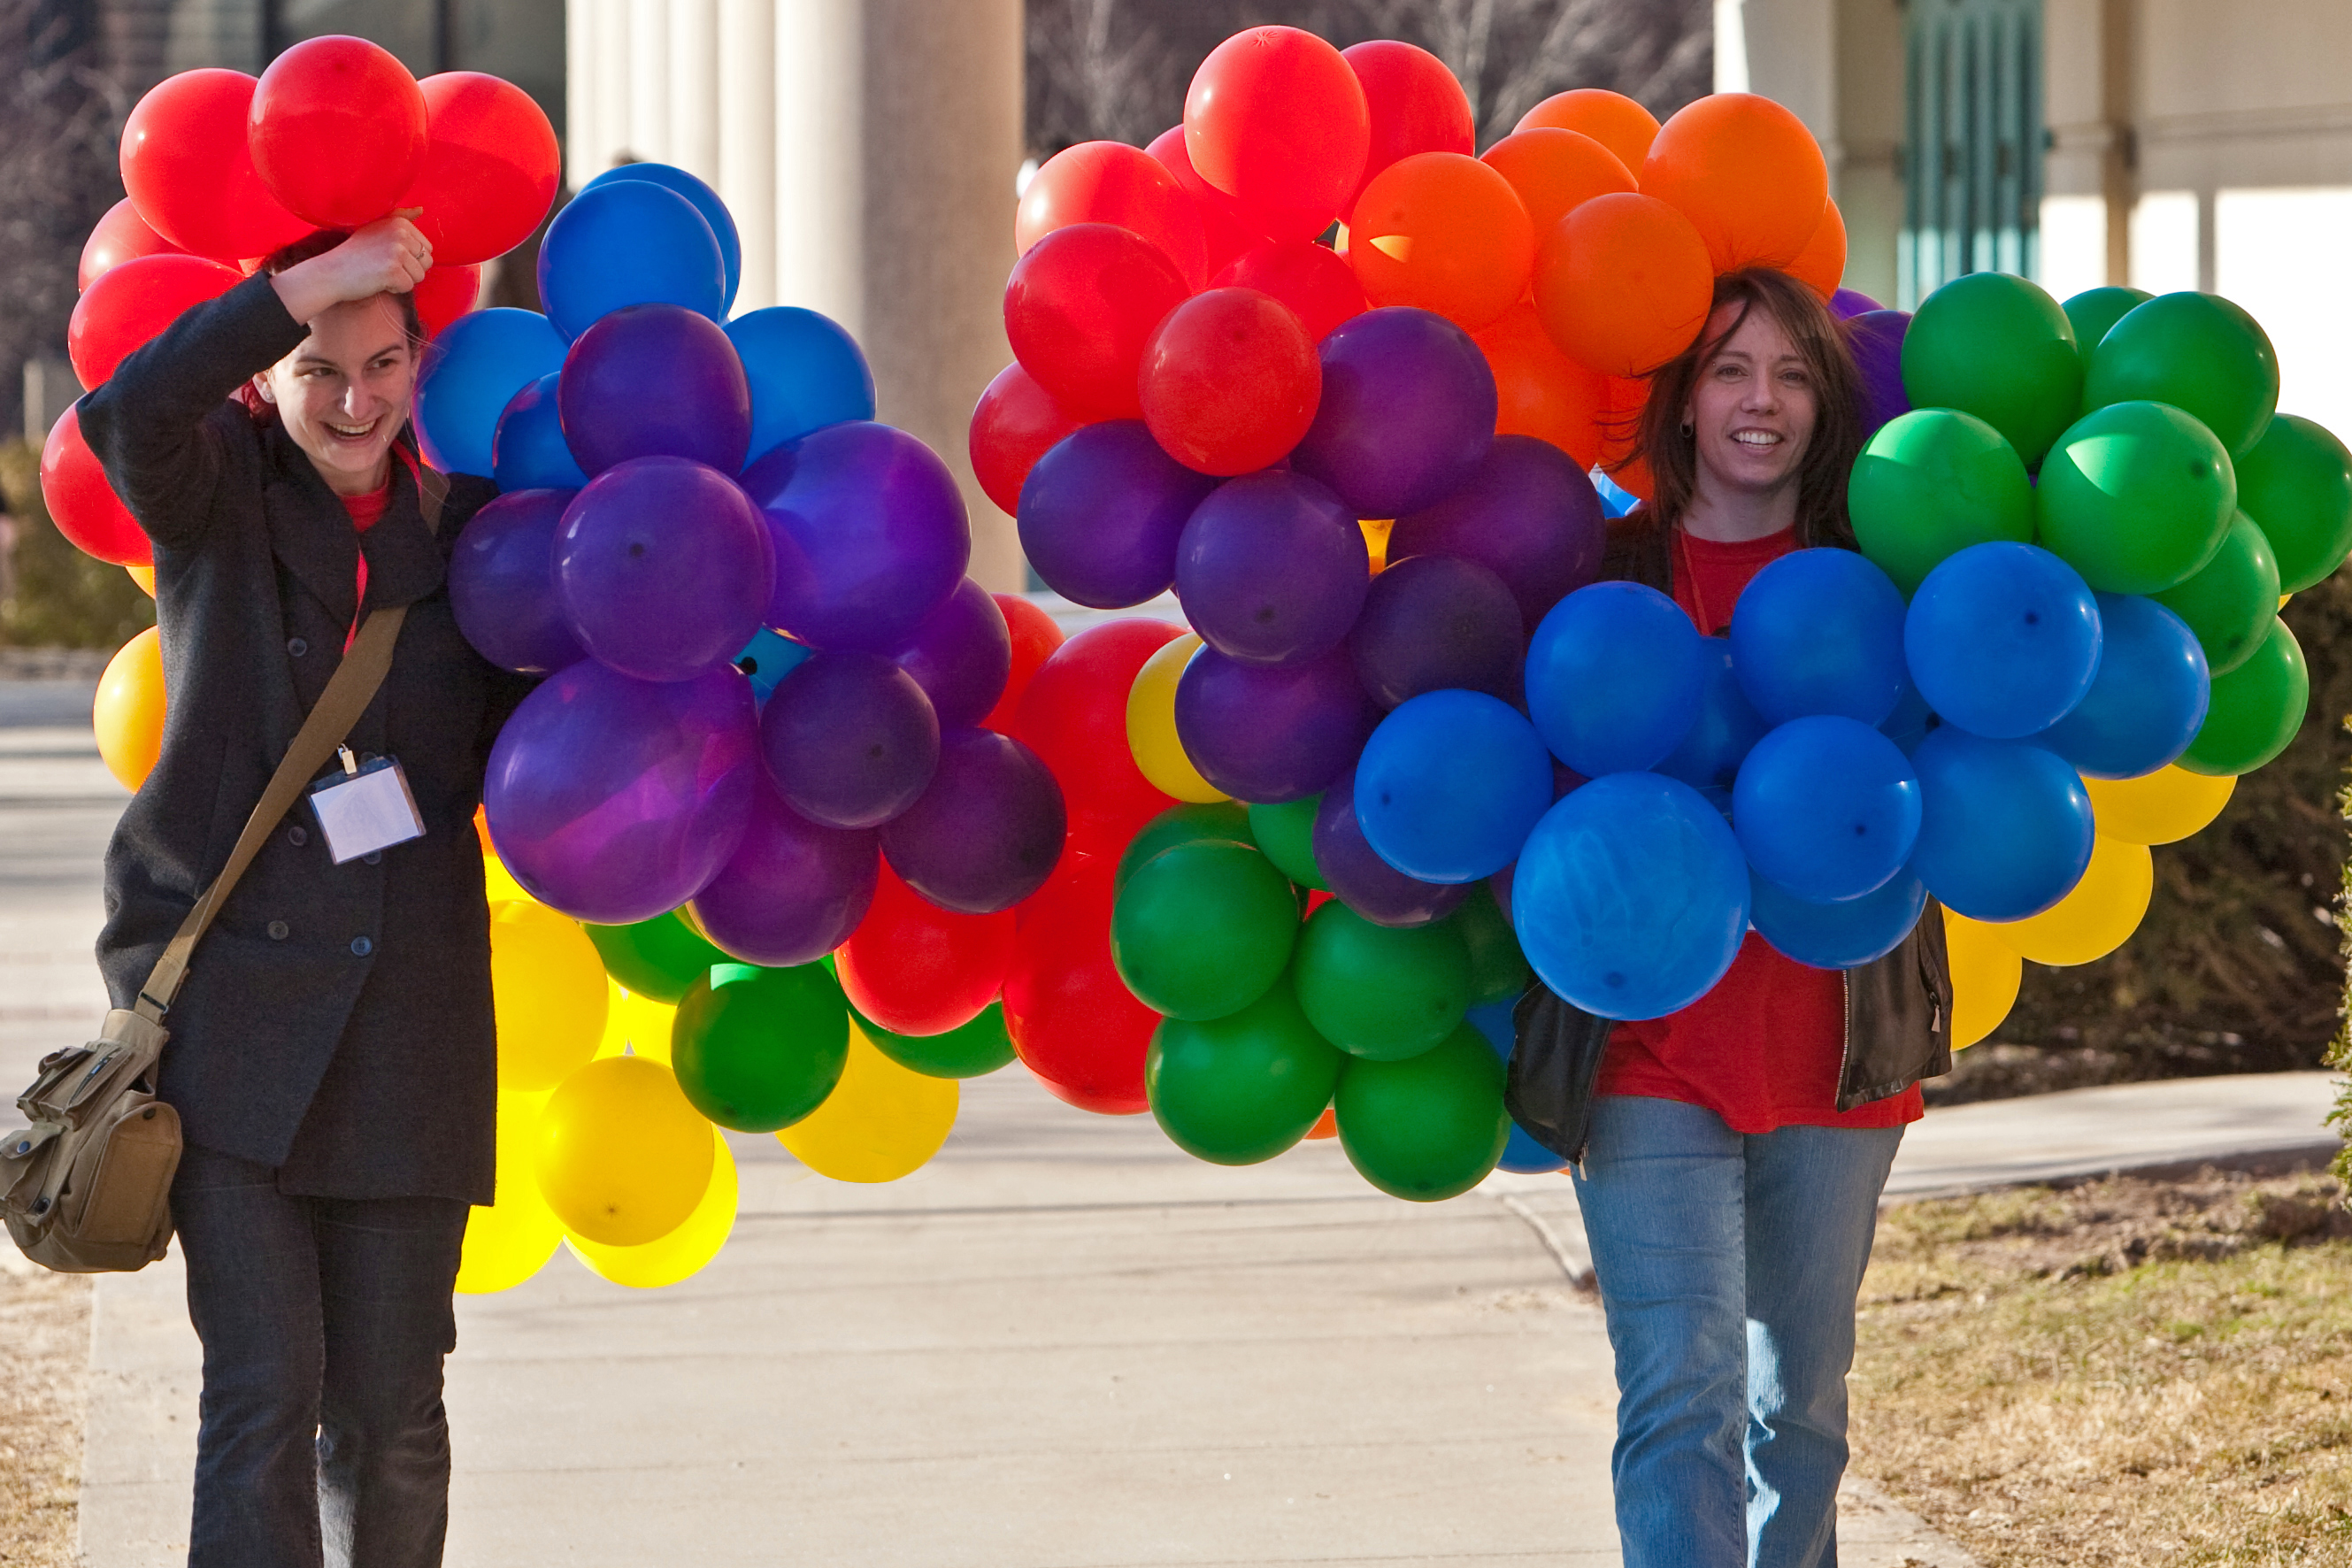 Two people walking with colorful balloons